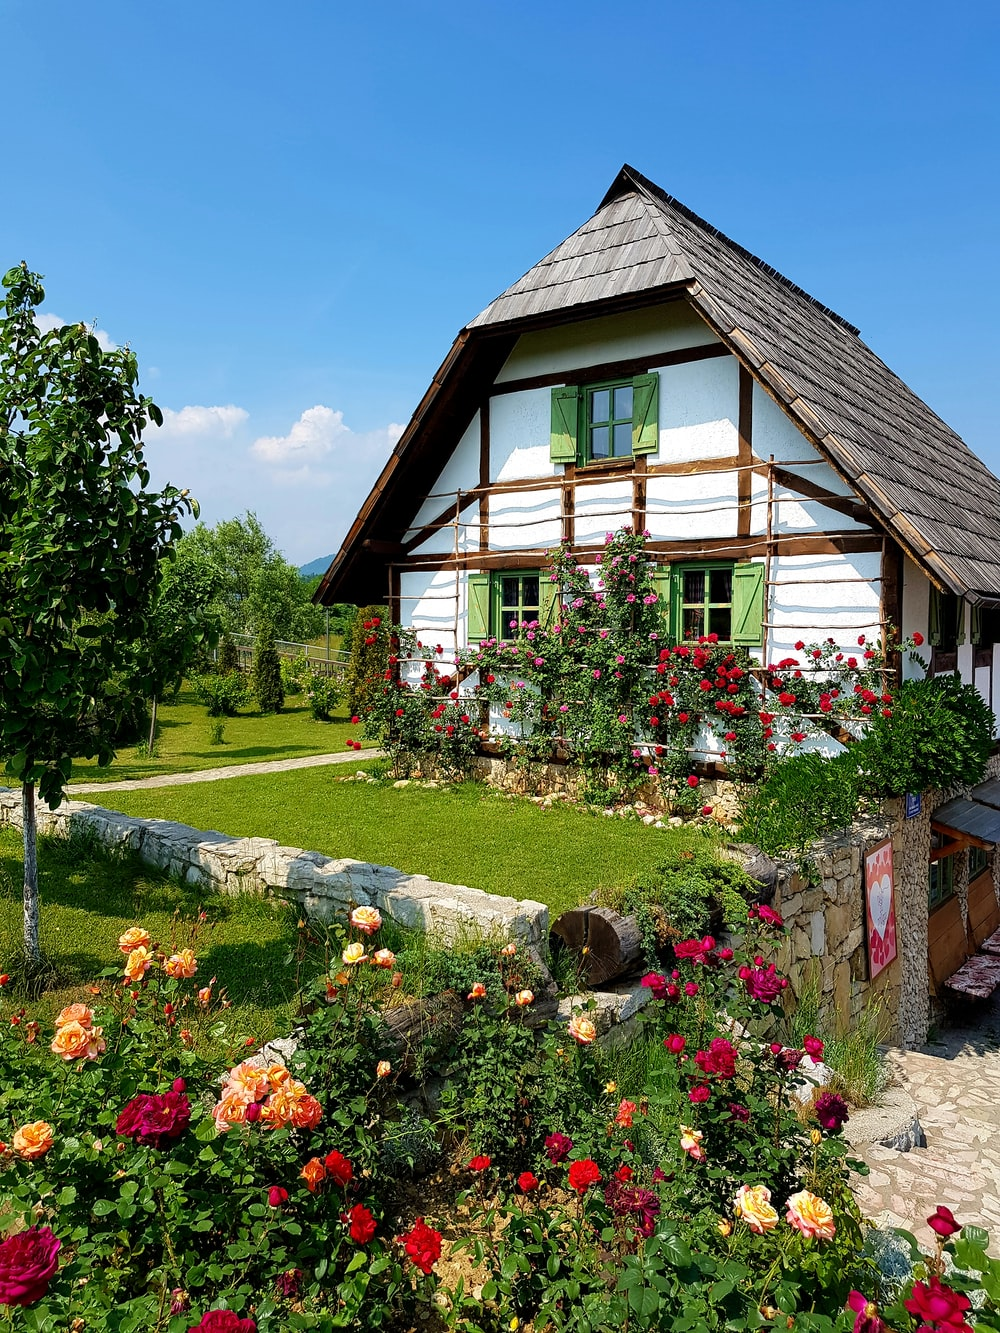 brown wooden house surrounded by green trees and flowers under blue sky during daytime